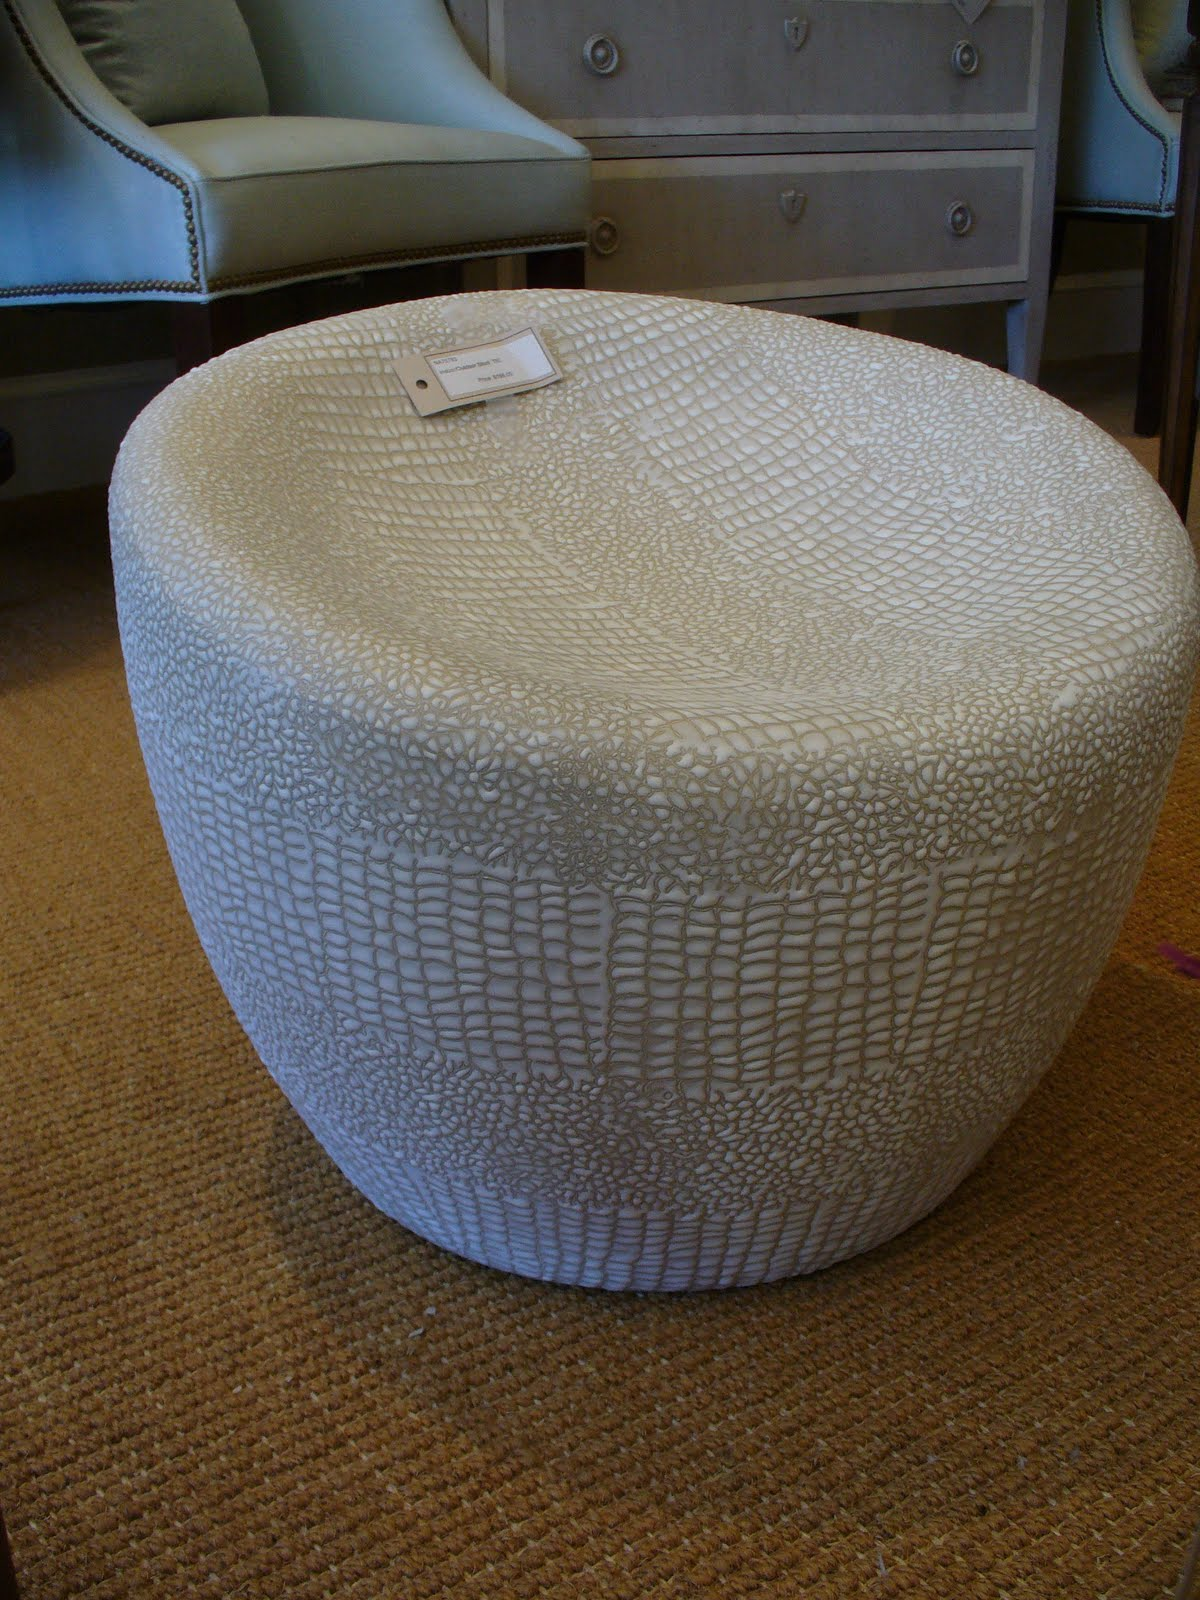 My notting hill blog - A Mod Indoor Outdoor Seat That S Made Of A Lightweight Ceramic